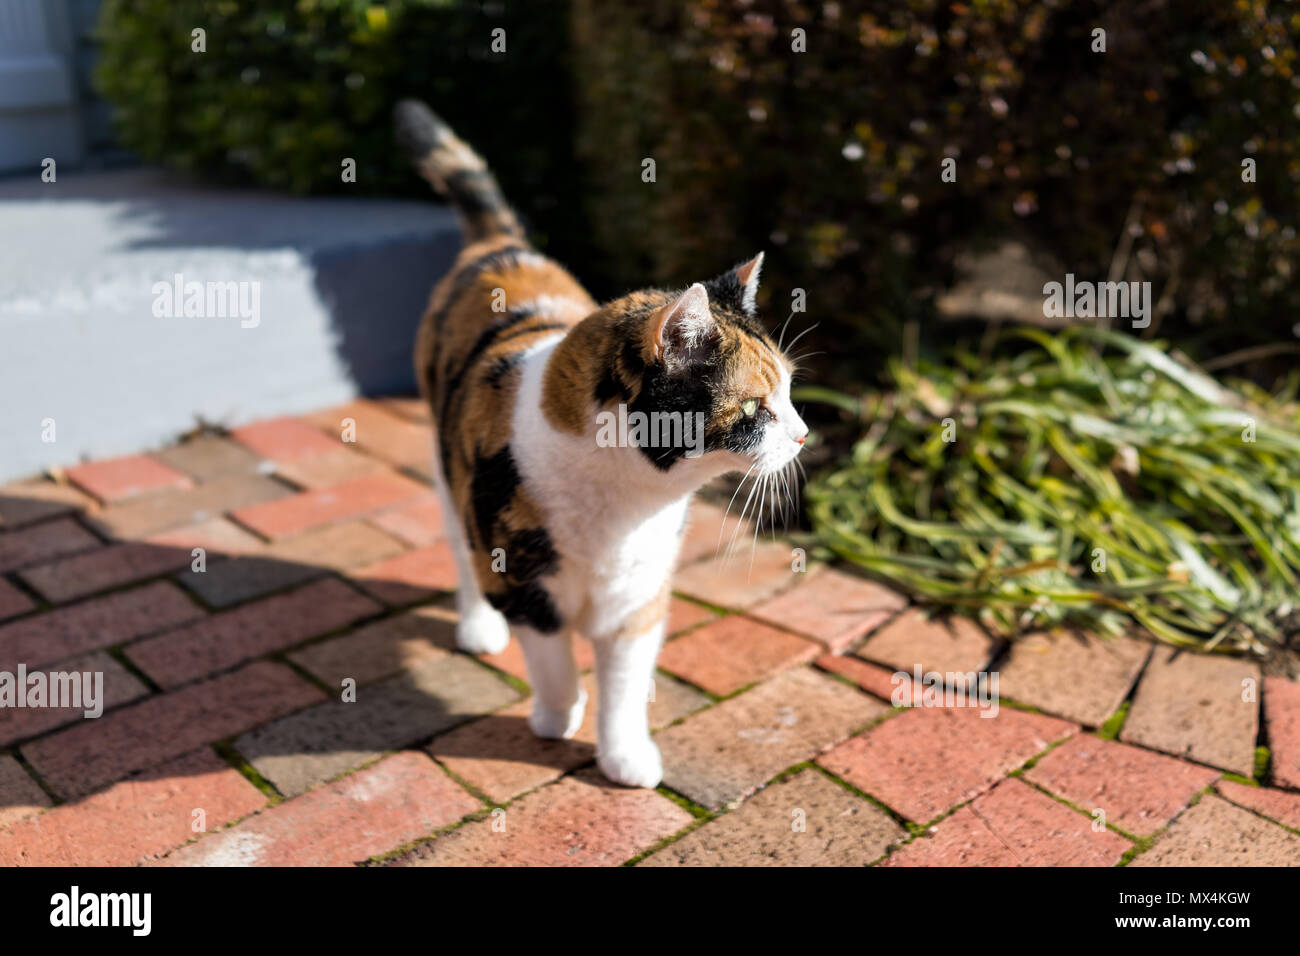 Curious calico cat standing outside green garden face in sunny